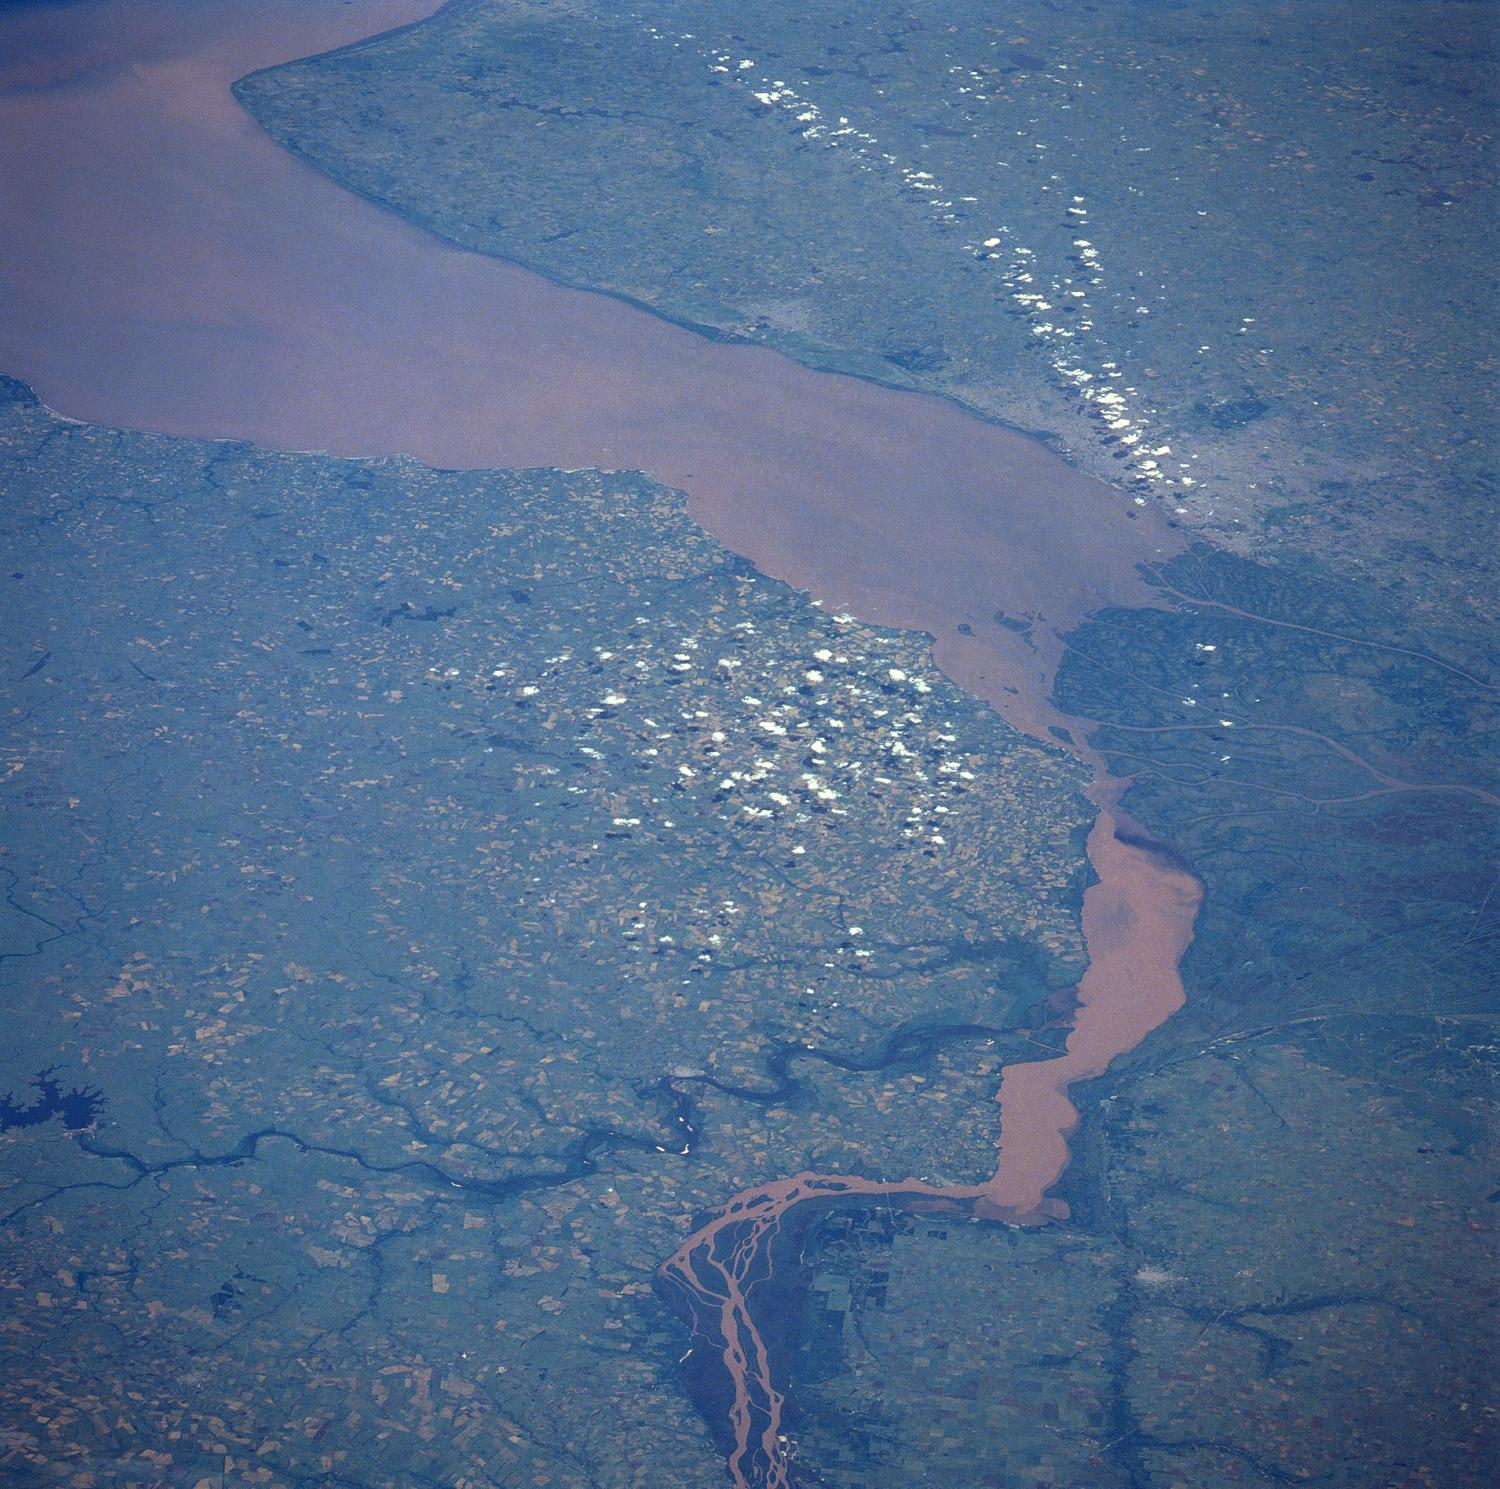 Satellite Image, Photo of Uruguay River, Rio de la Plata, Uruguay